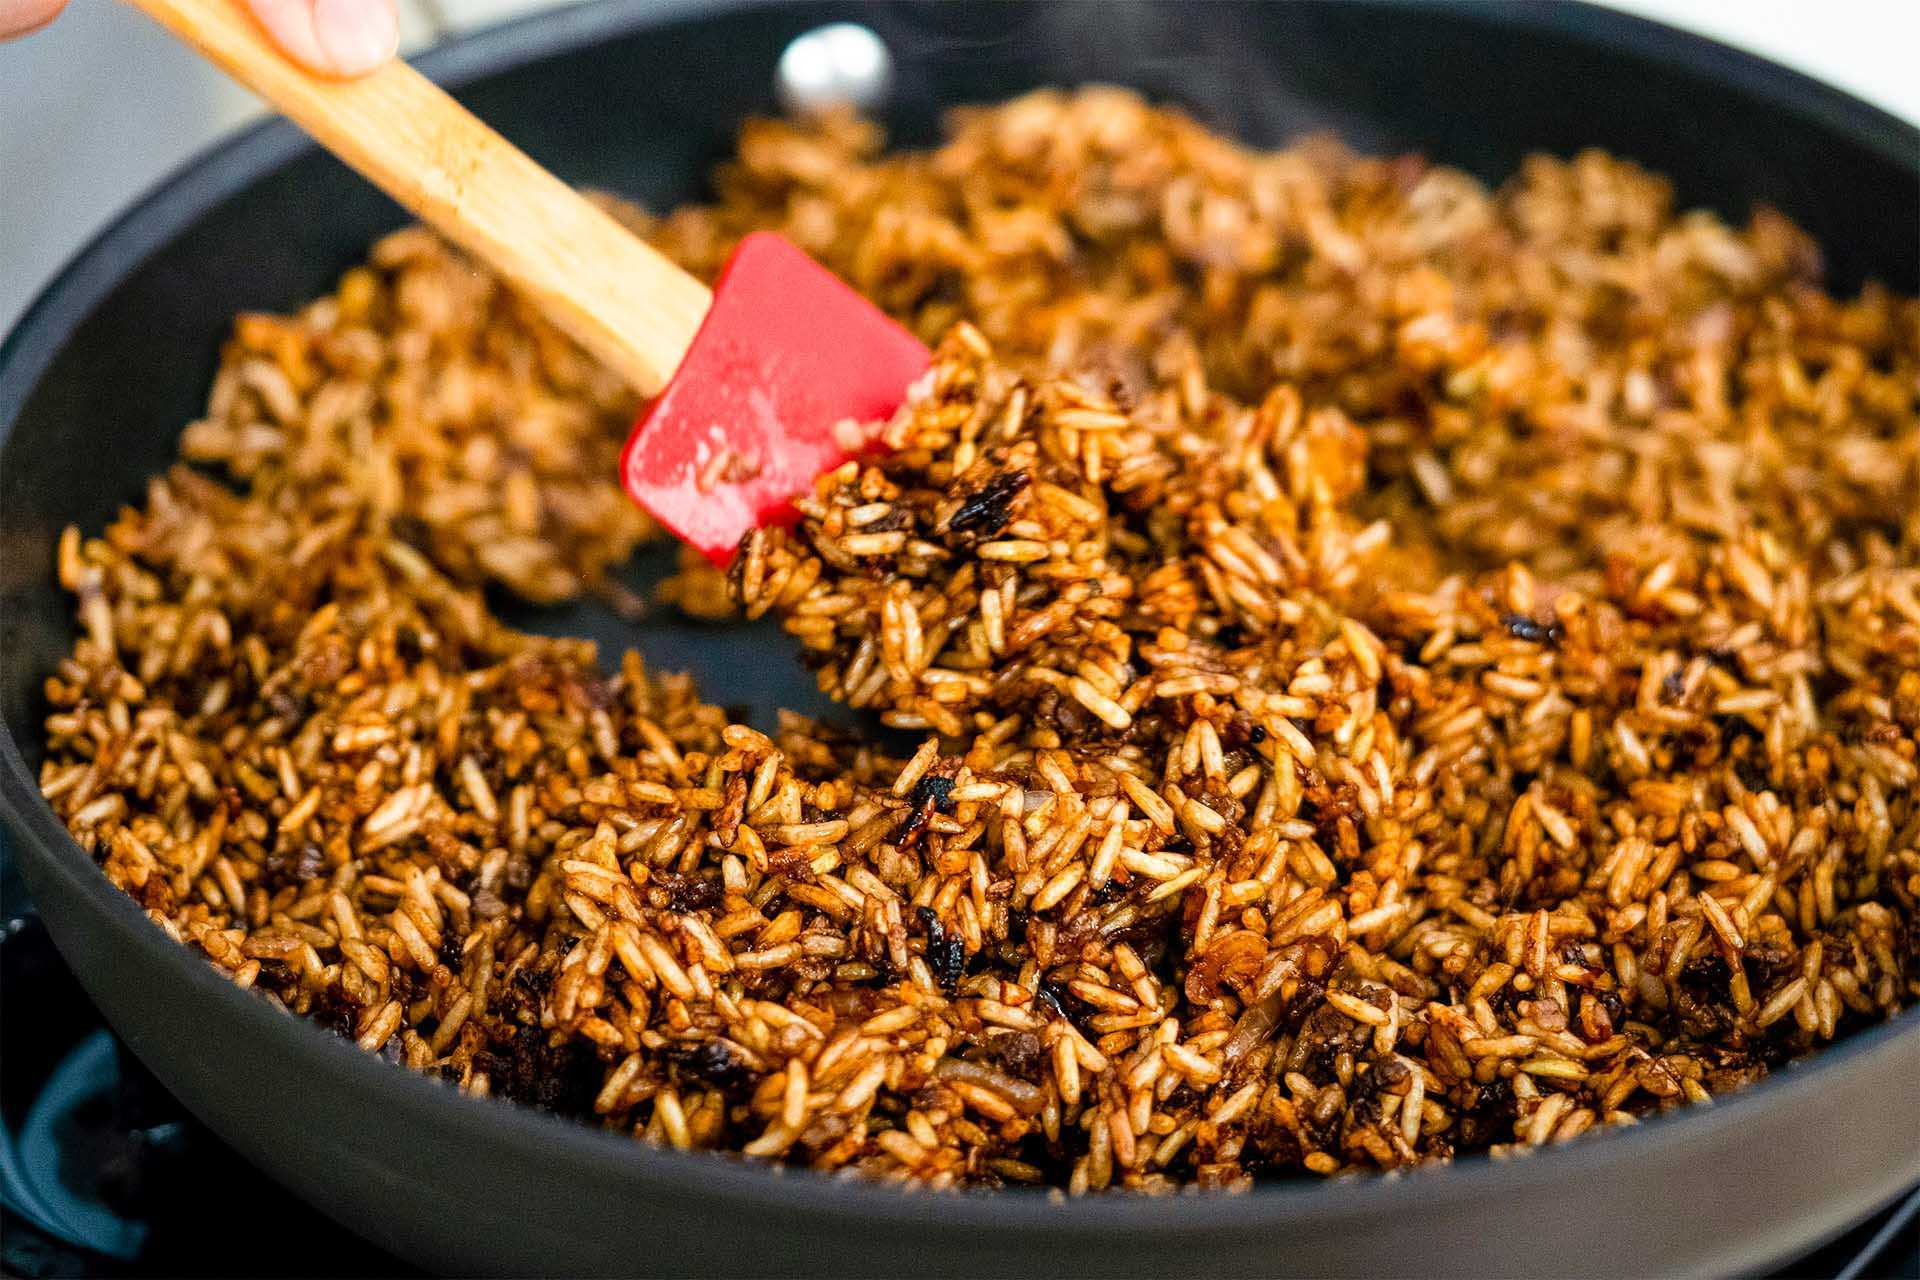 Cook seasoned rice